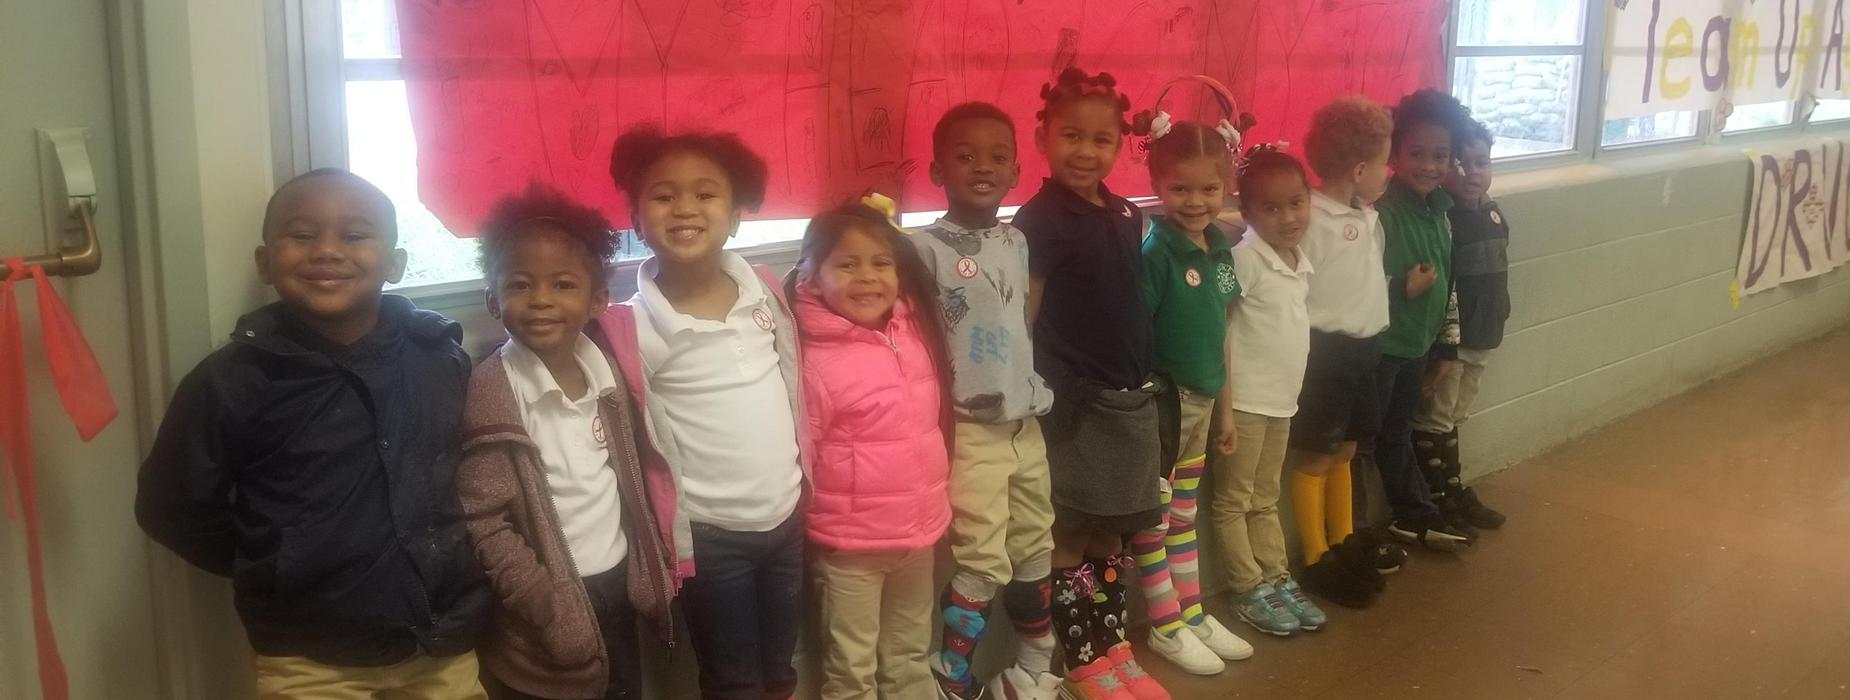 Crazy Hair & Sock Day - Red Ribbon Week